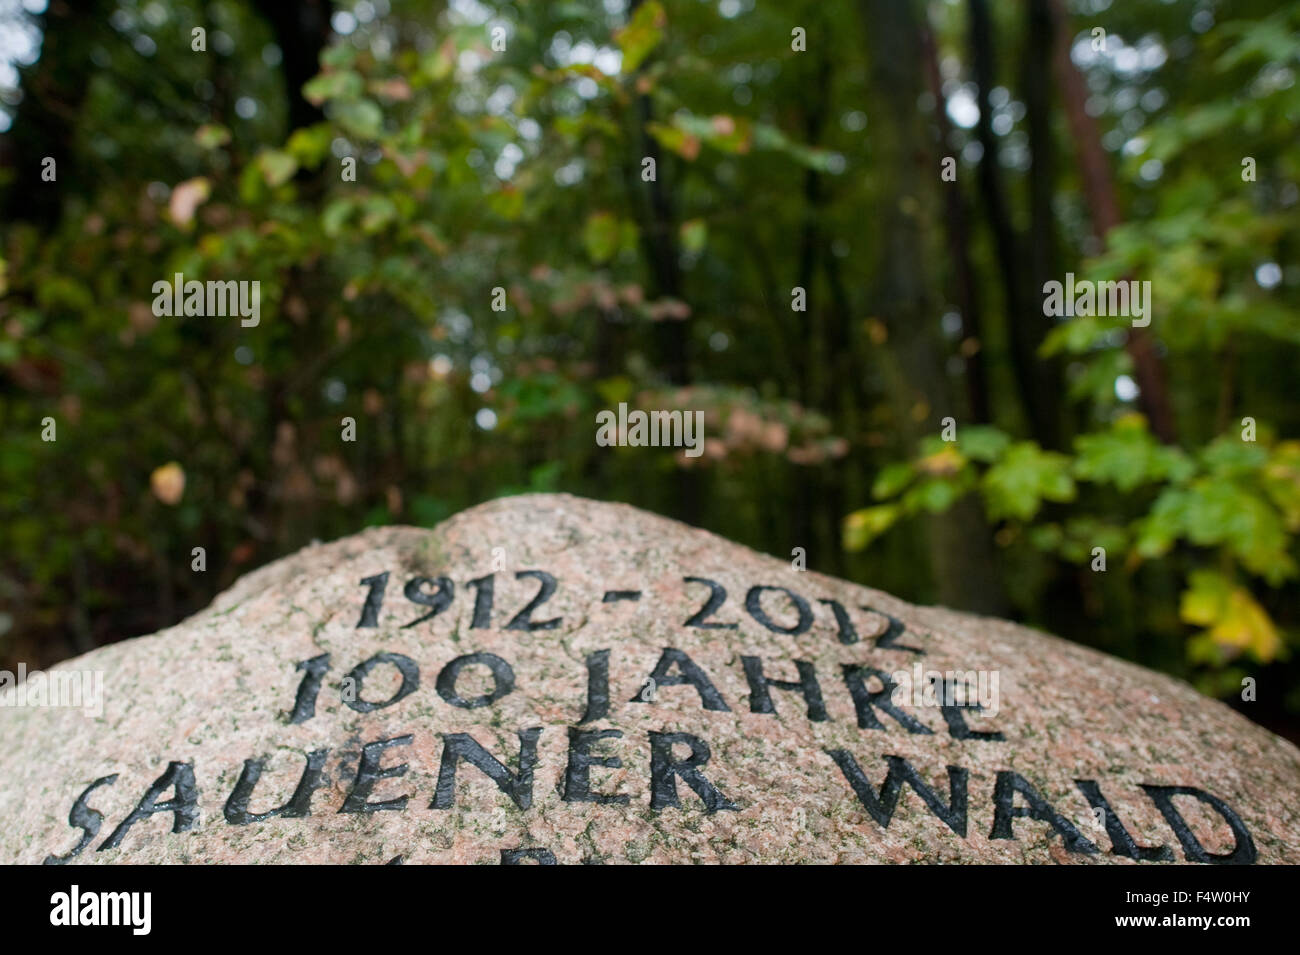 Sauen, Germany. 20th Oct, 2015. A stone reads '100 Jahre Sauener Walk' (lit. 100 years of Sauen Forest) - Stock Image